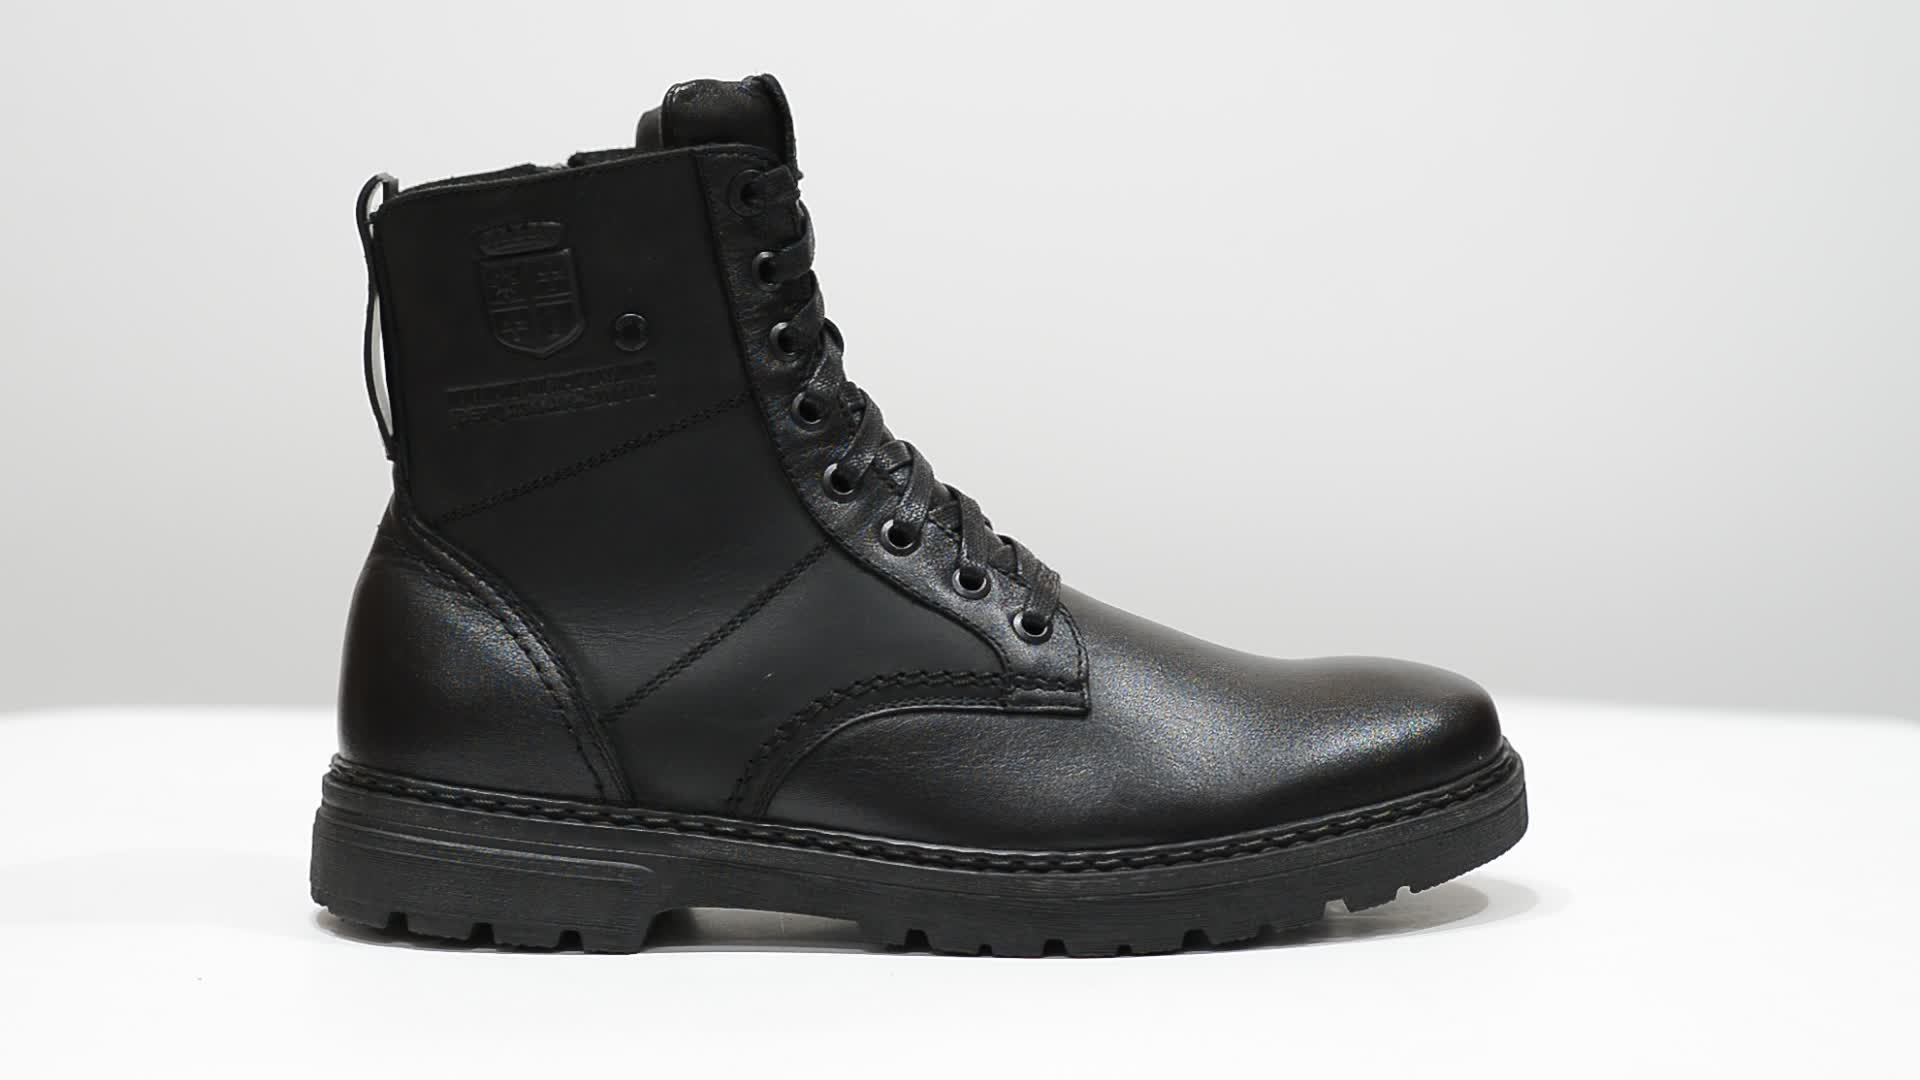 Men's winter boots M794 chp